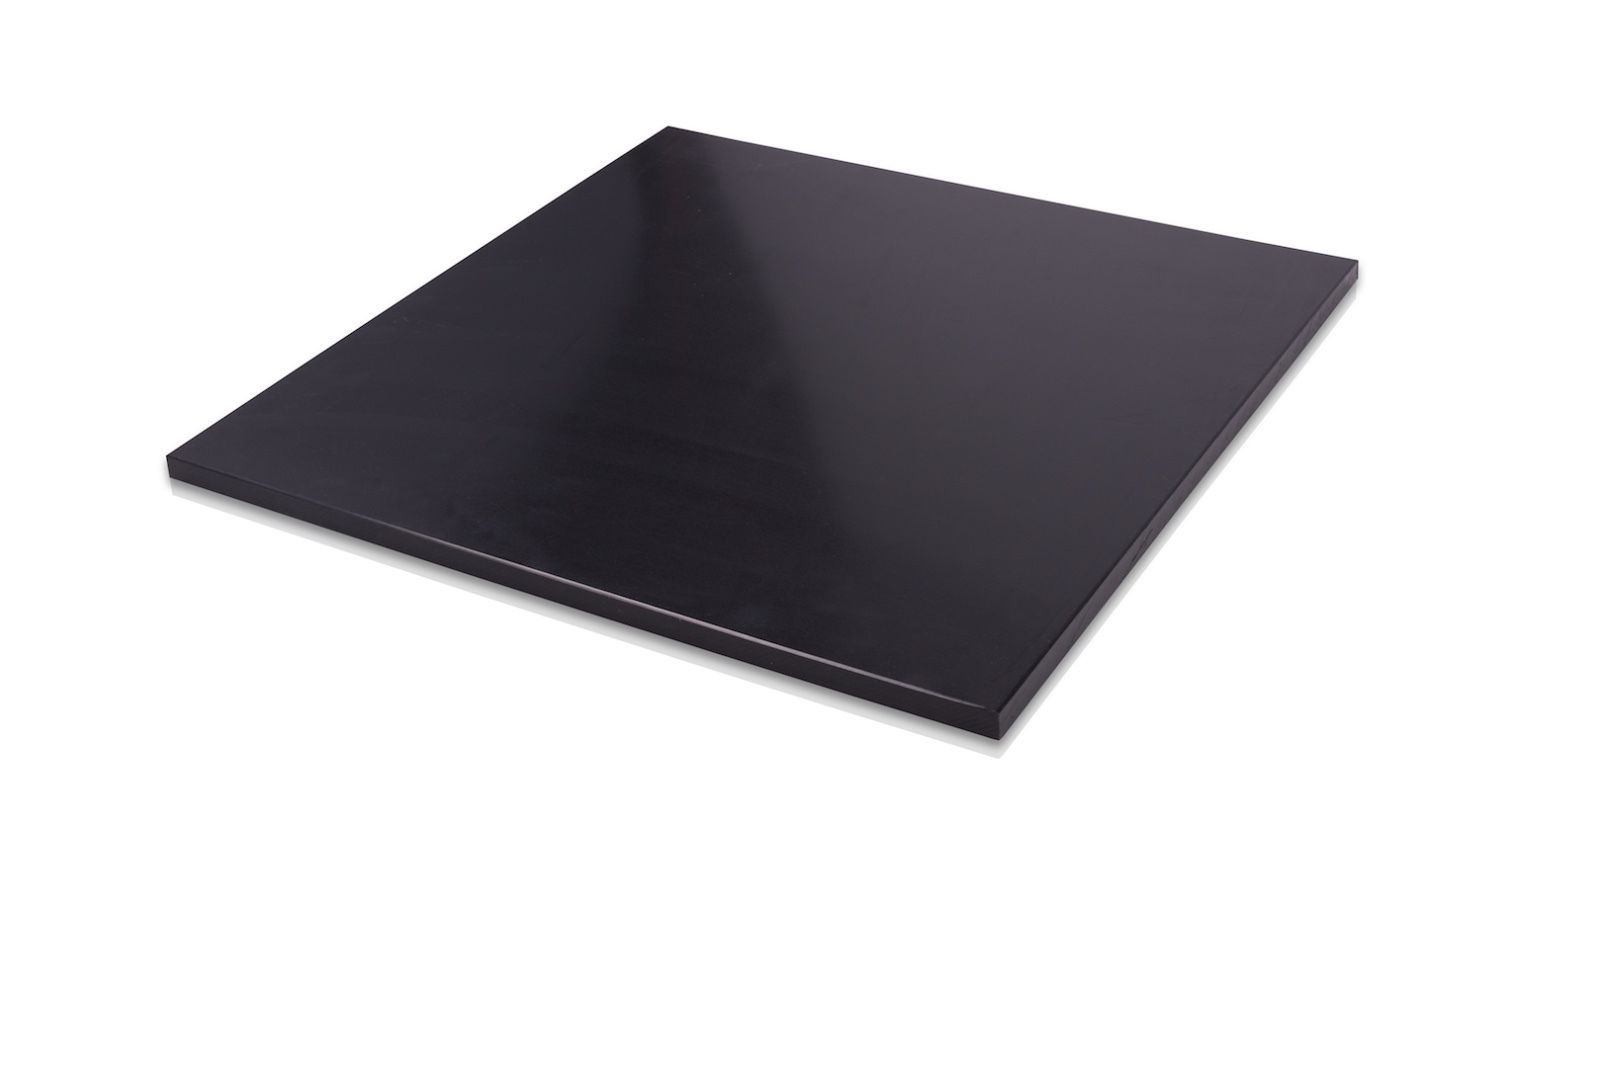 Details About Hdpe Black Plastic Polyethylene Sheets You Pick The Size 1 4 8 Pack Options Plastic Sheets Plastic Manufacturers Plastic Industry